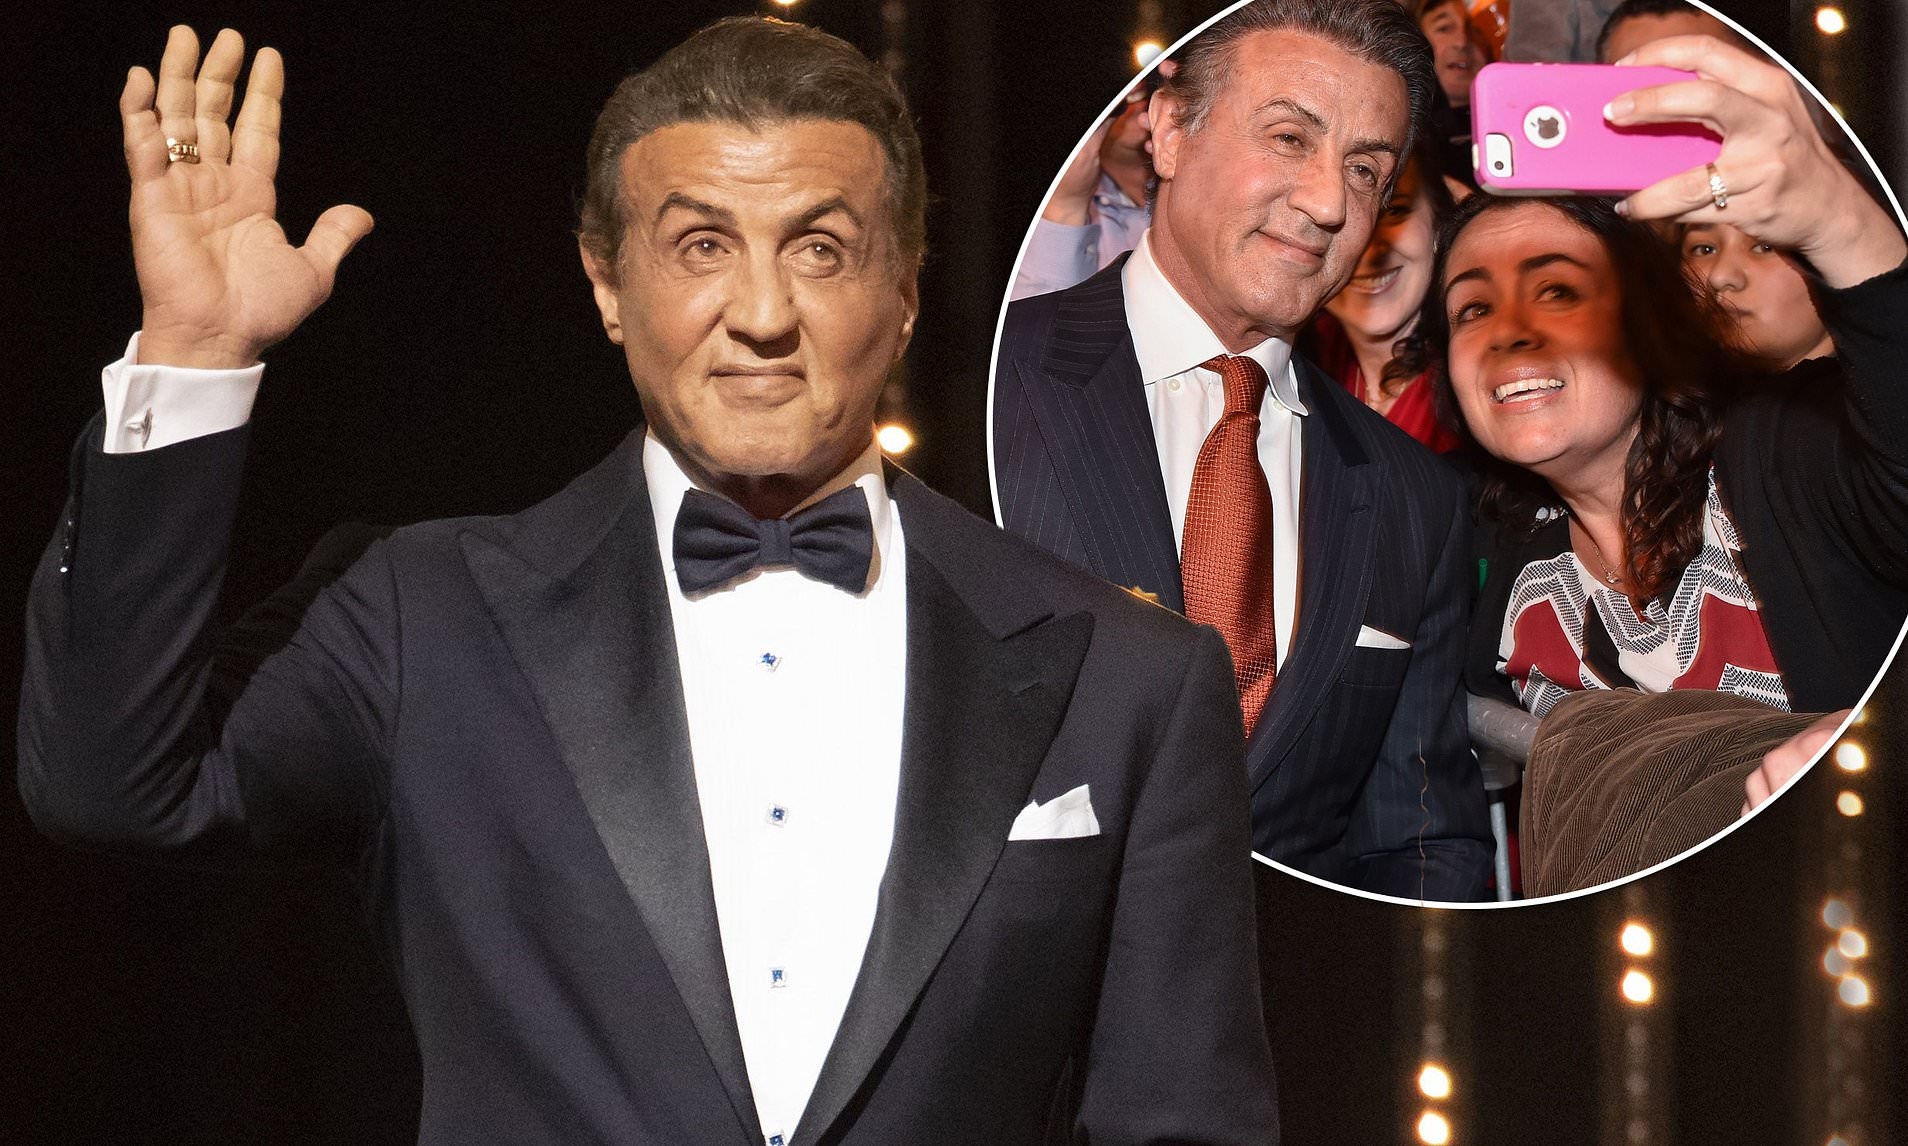 Sylvester Stallone charges £849 for a photo with him at UK events- fans feels disappointed